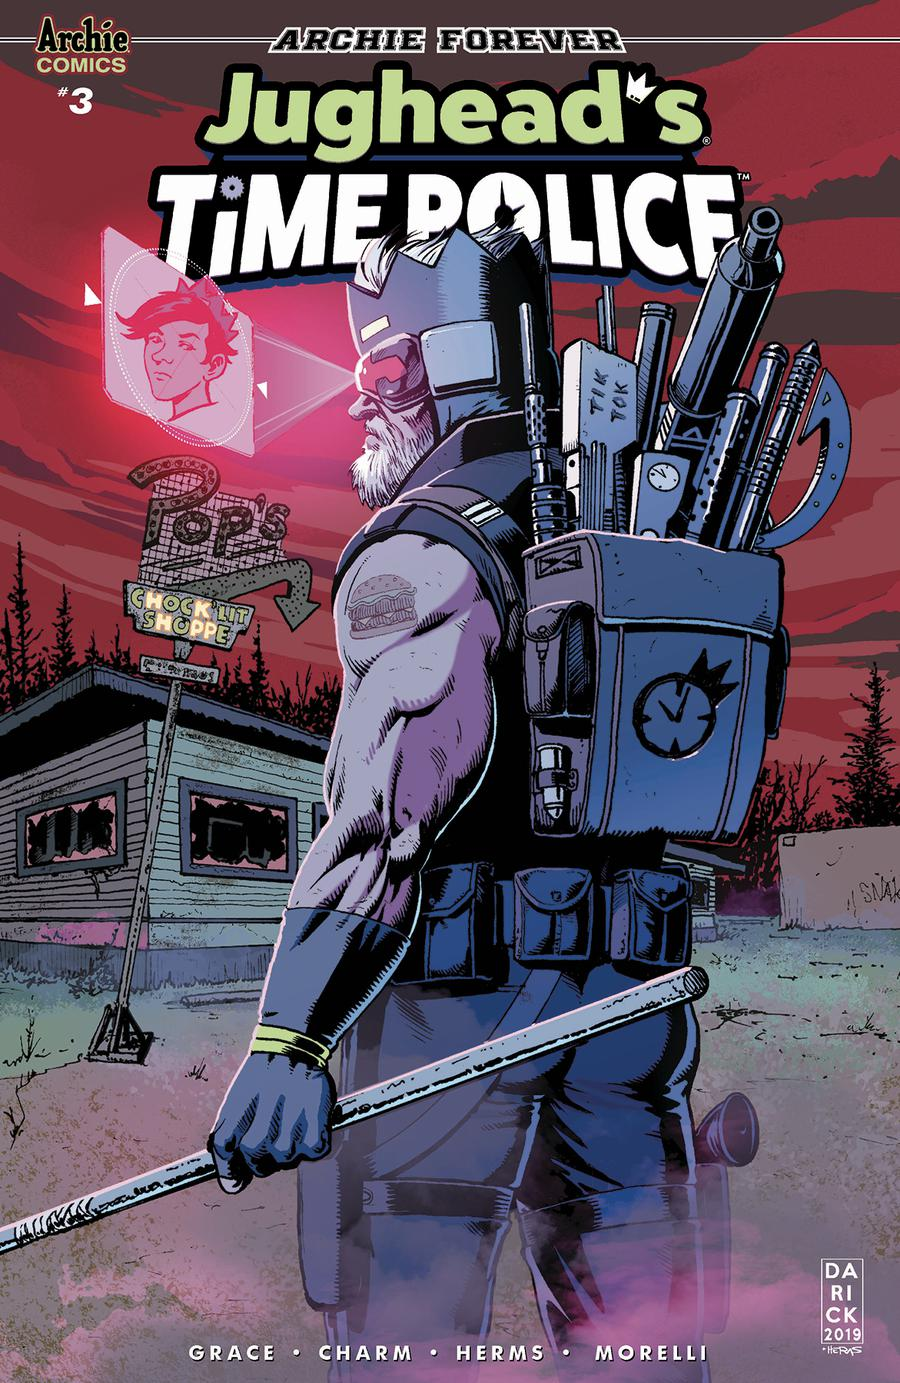 Jugheads Time Police Vol 2 #3 Cover C Variant Darick Robertson Cover